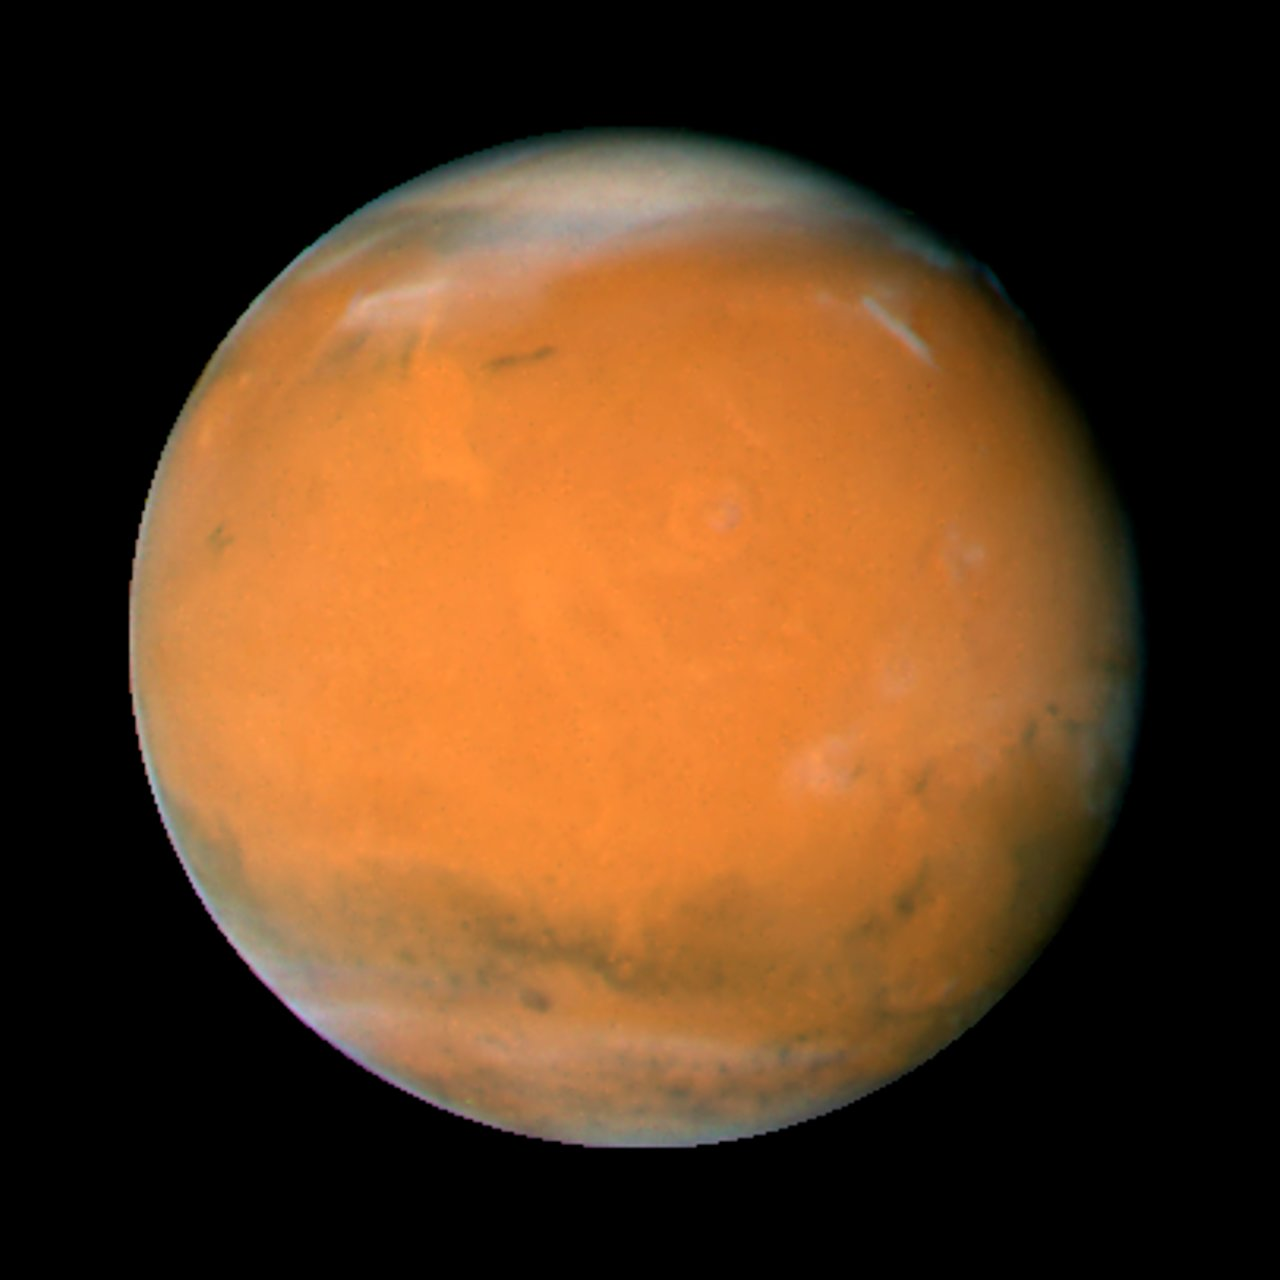 hubble images of mars - photo #13